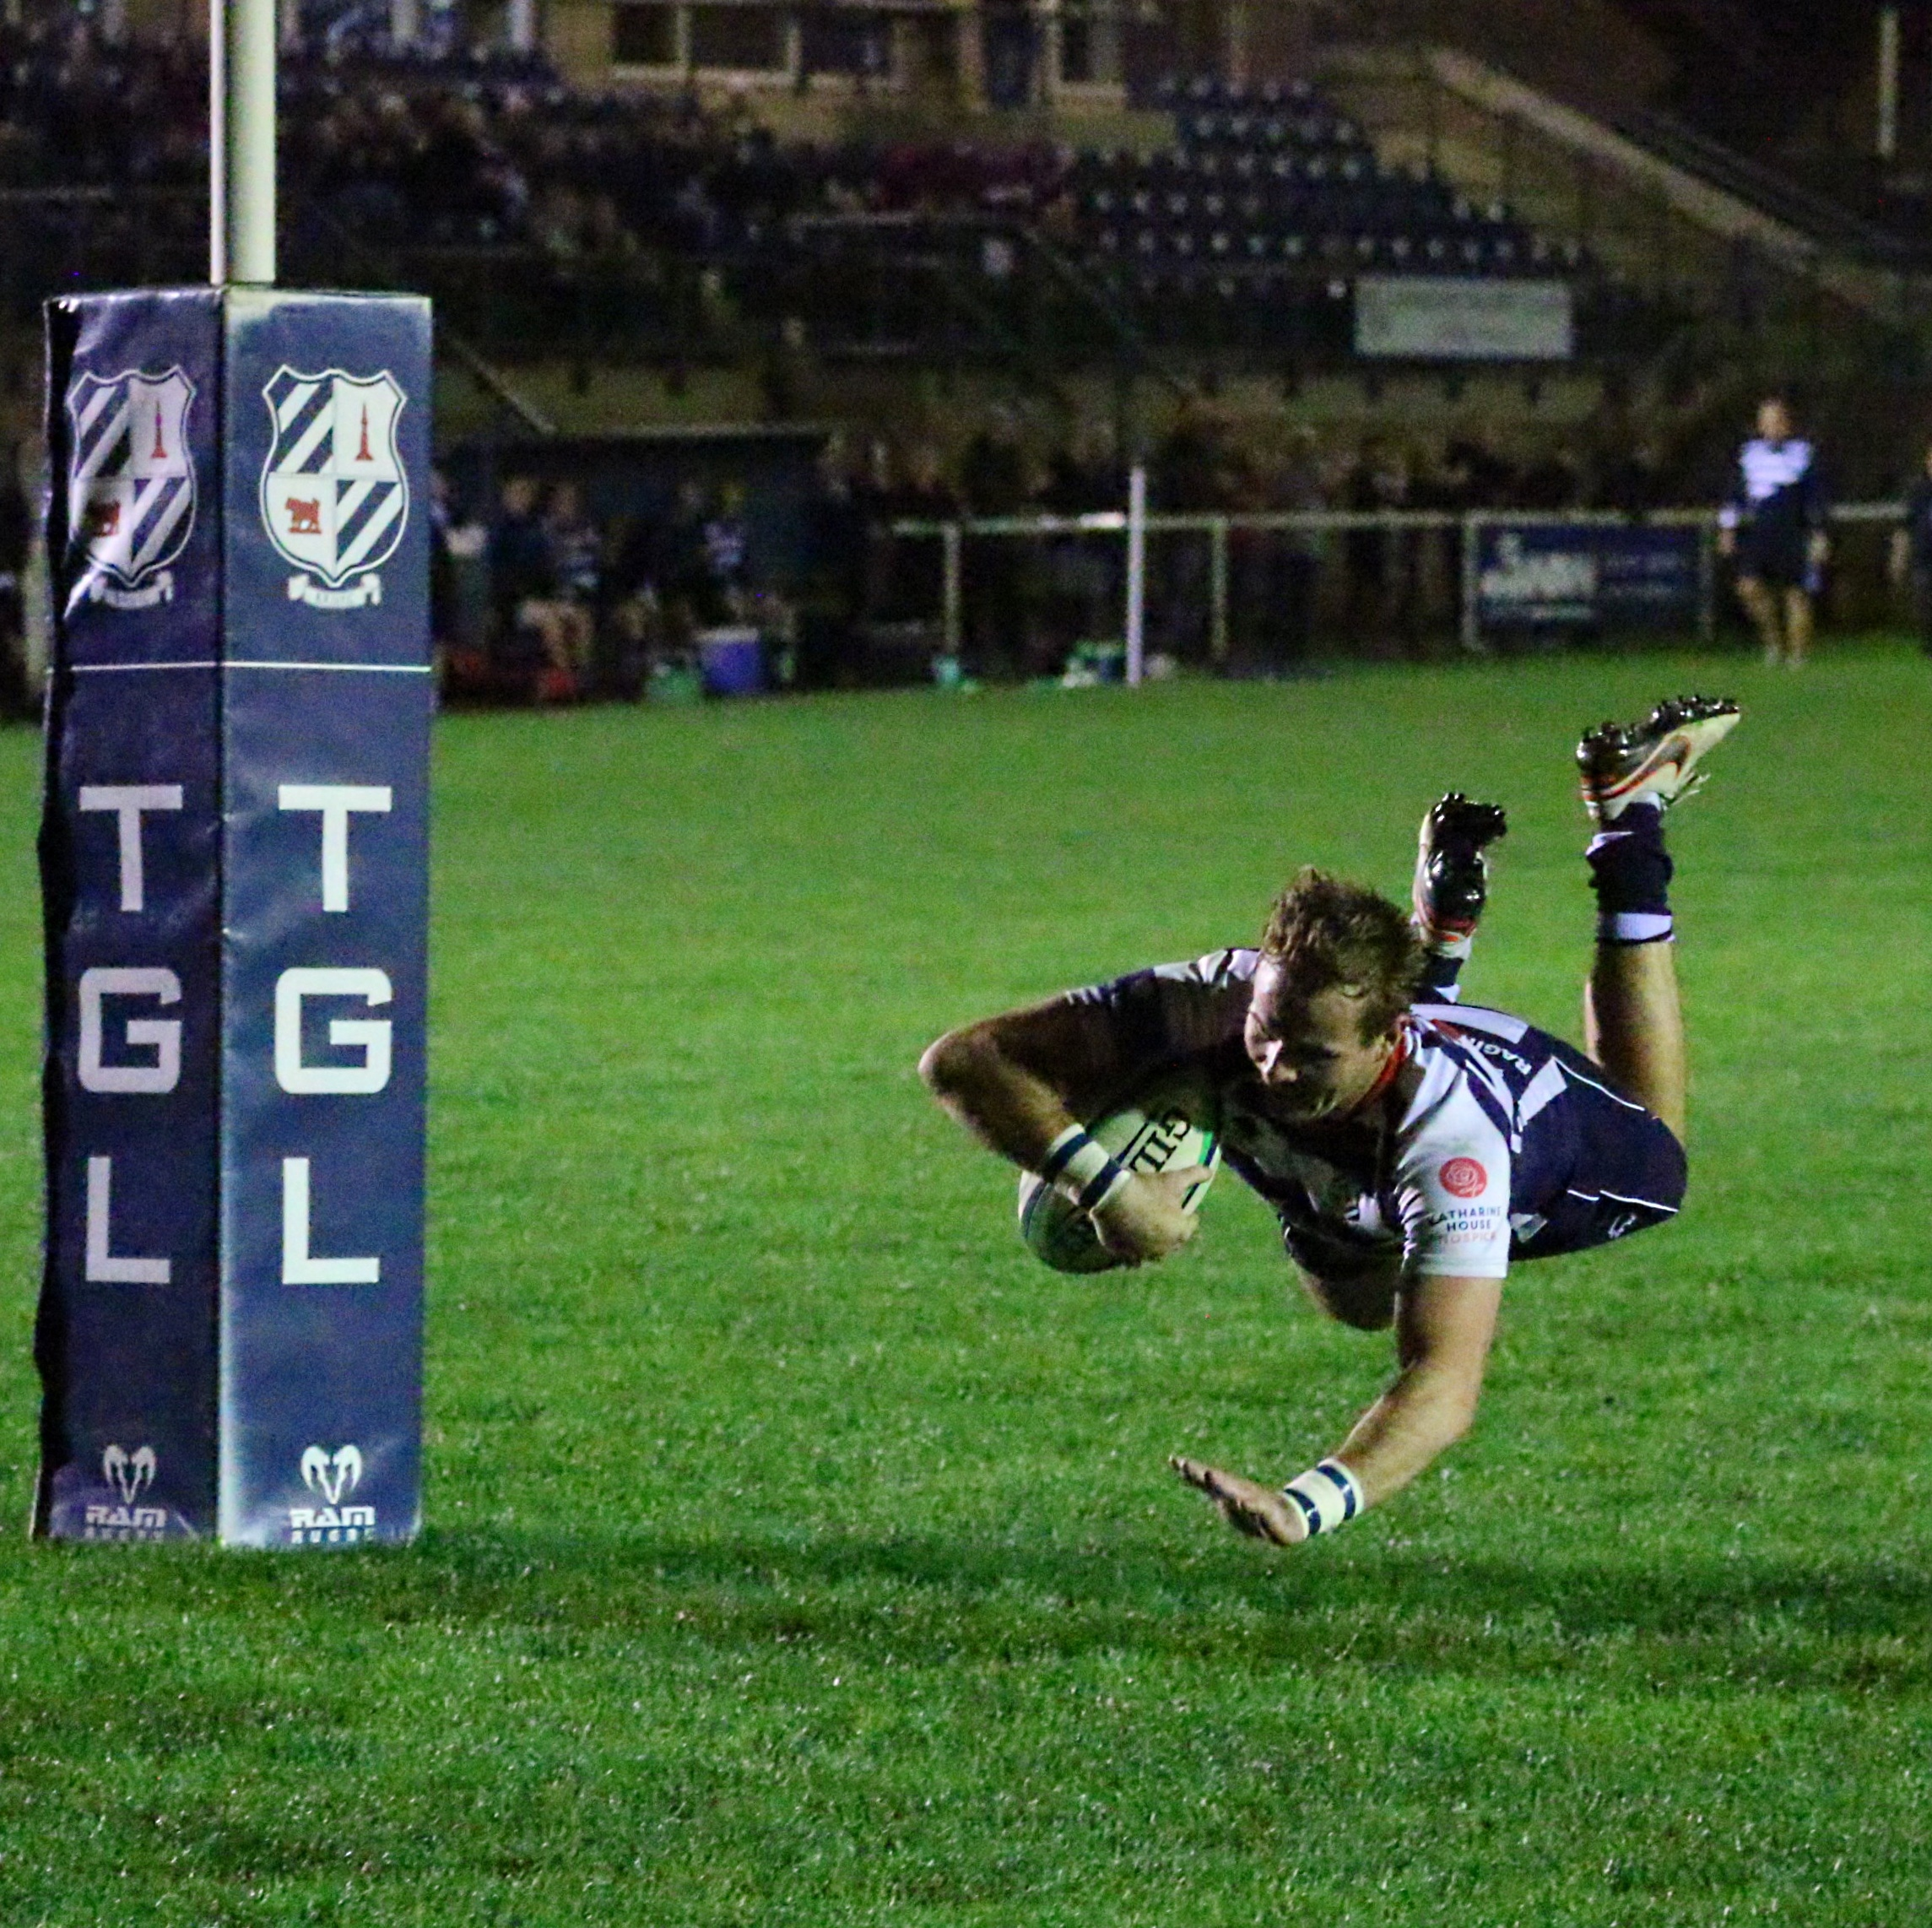 OFF THE GROUND: Banbury winger Tommy Gray dives over for a try during his side's 57-13 win over OxfordBrookes University in the Oxfordshire Cup Picture: Simon Grieve